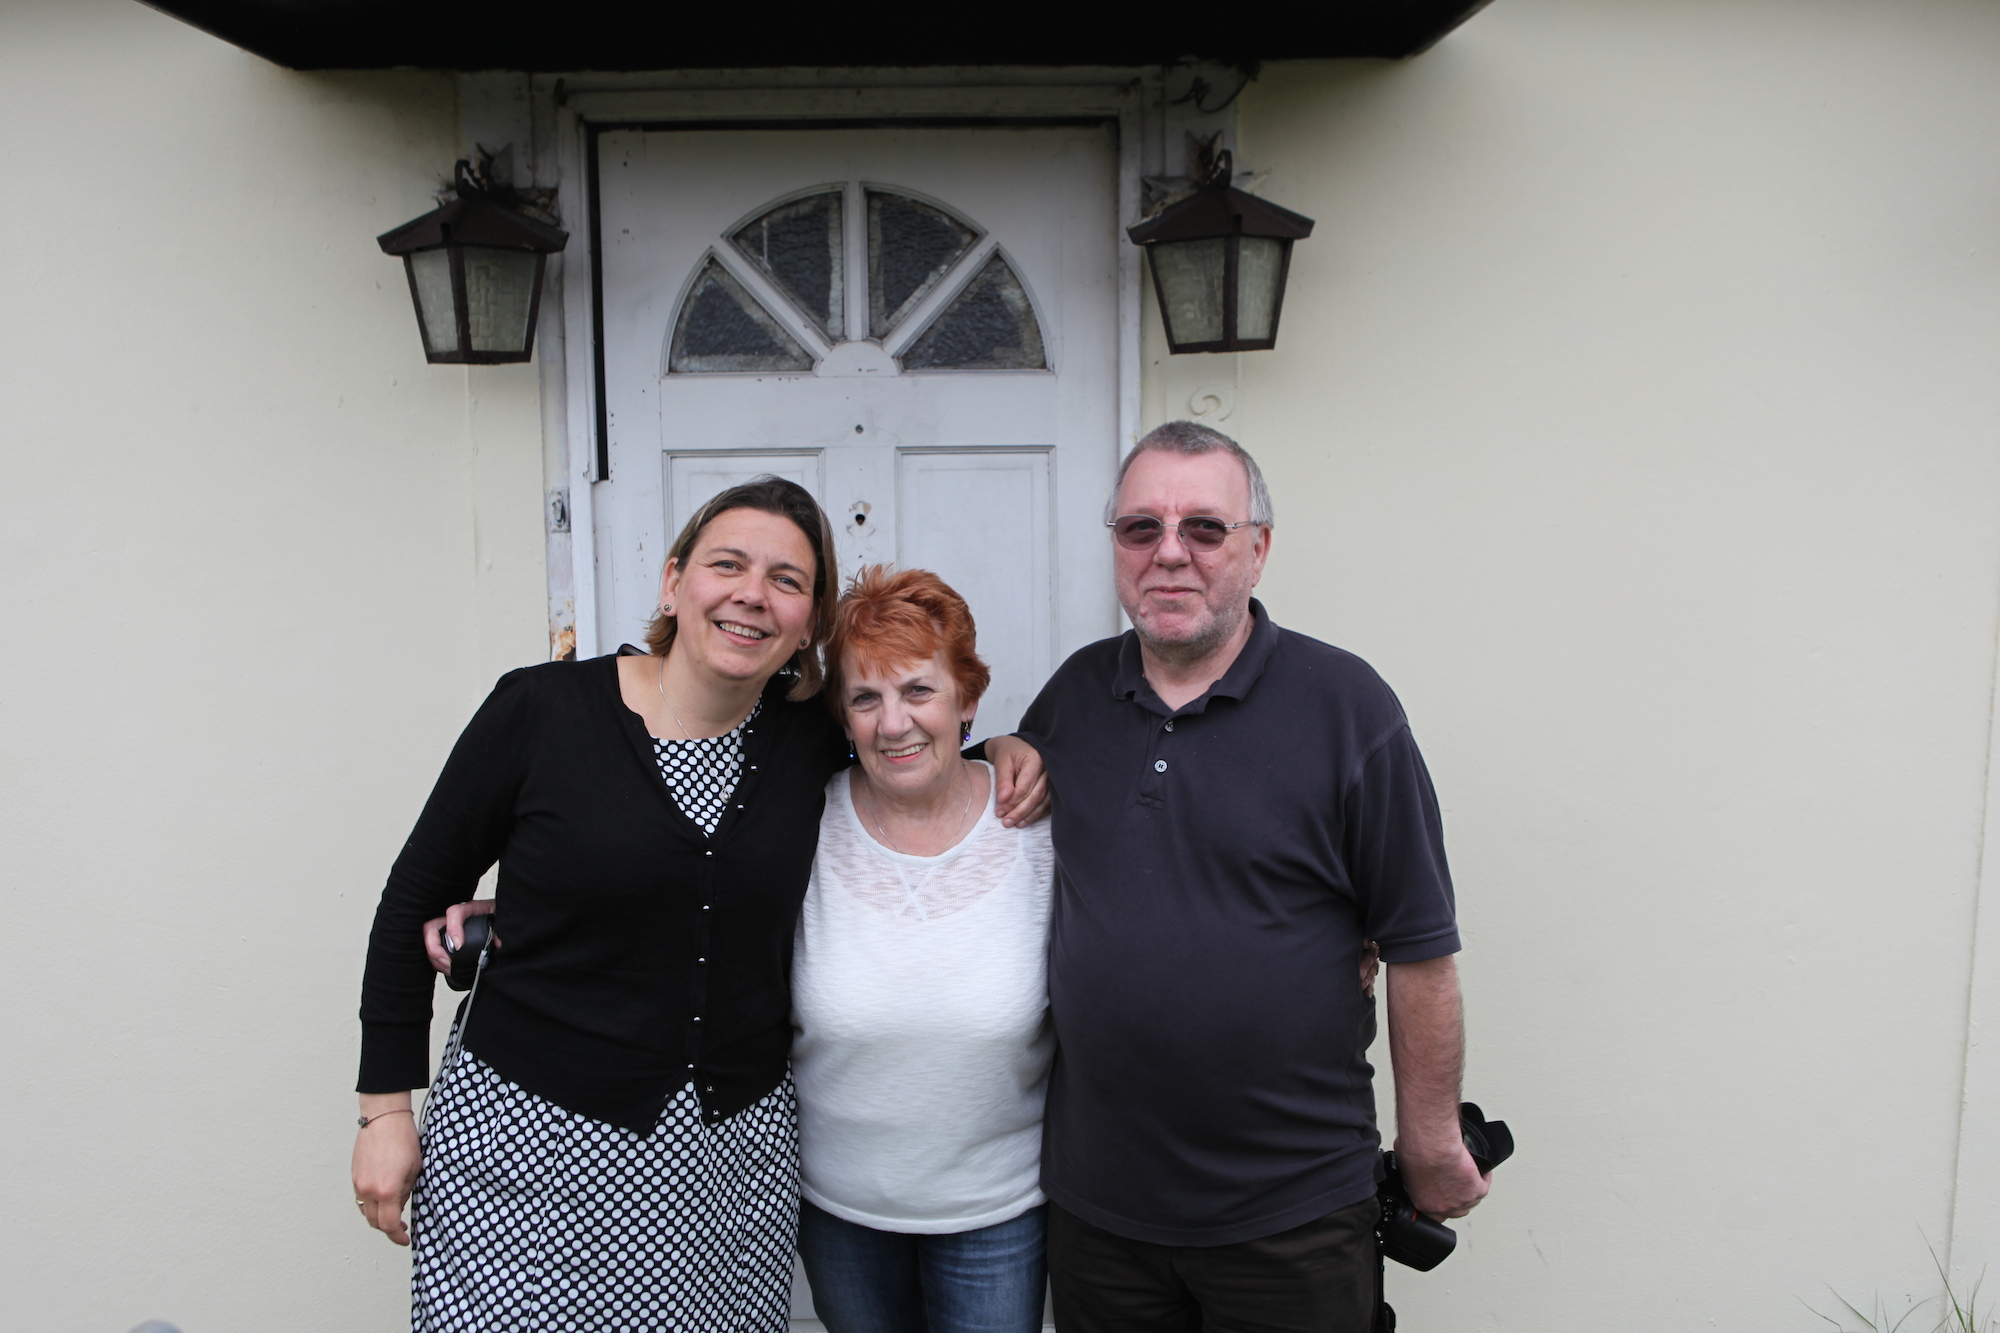 Elisabeth Blanchet, Rosemary Roffey and Alan Brine outside the prefab they grew up in on the Excalibur Estate, May 2014